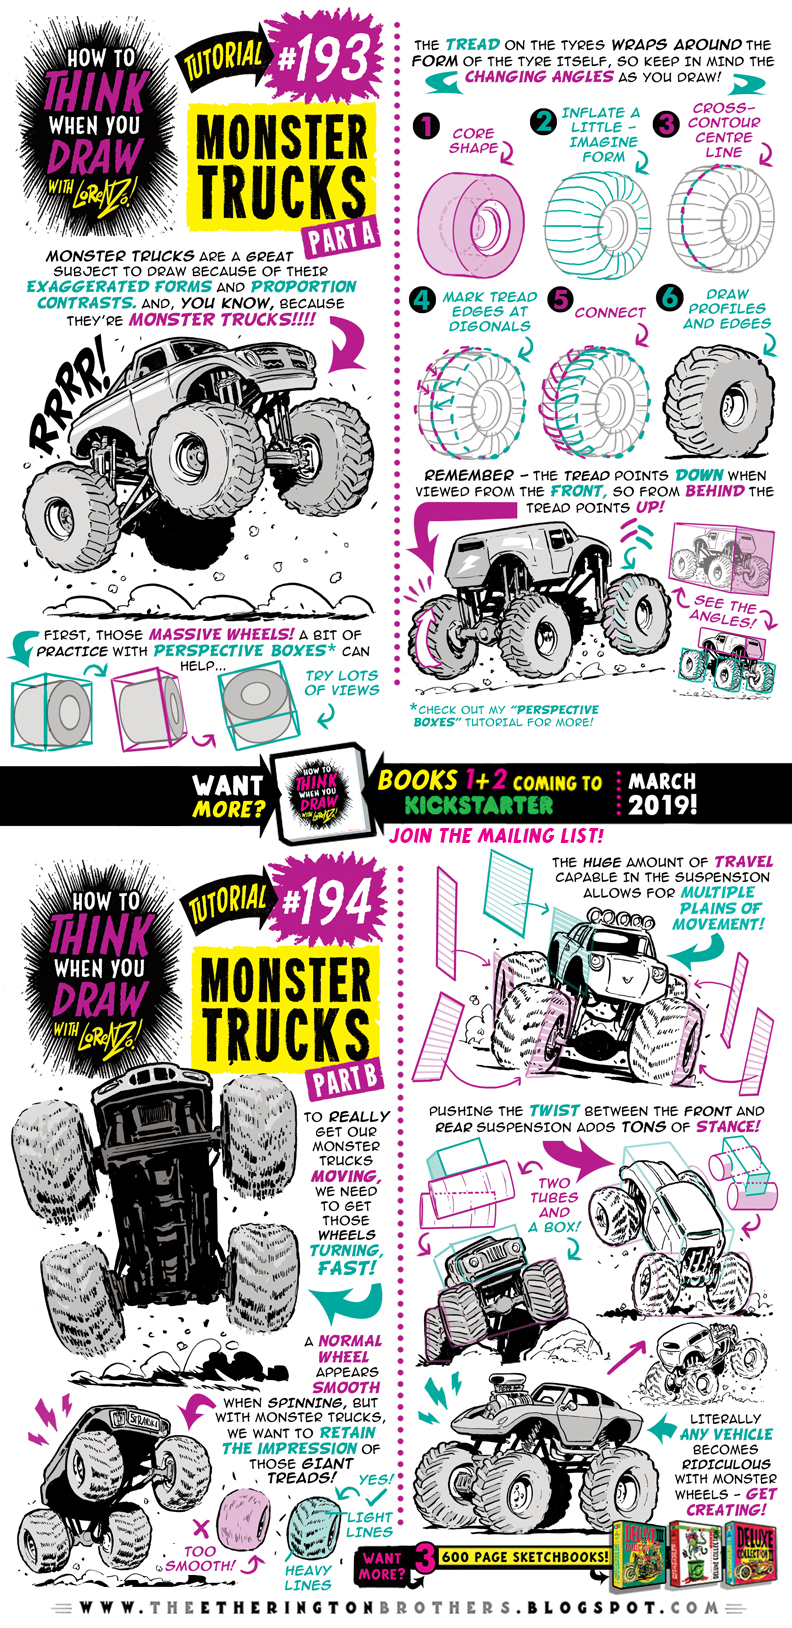 How To Think When You Draw Monster Trucks Tutorial By Etheringtonbrothers On Deviantart